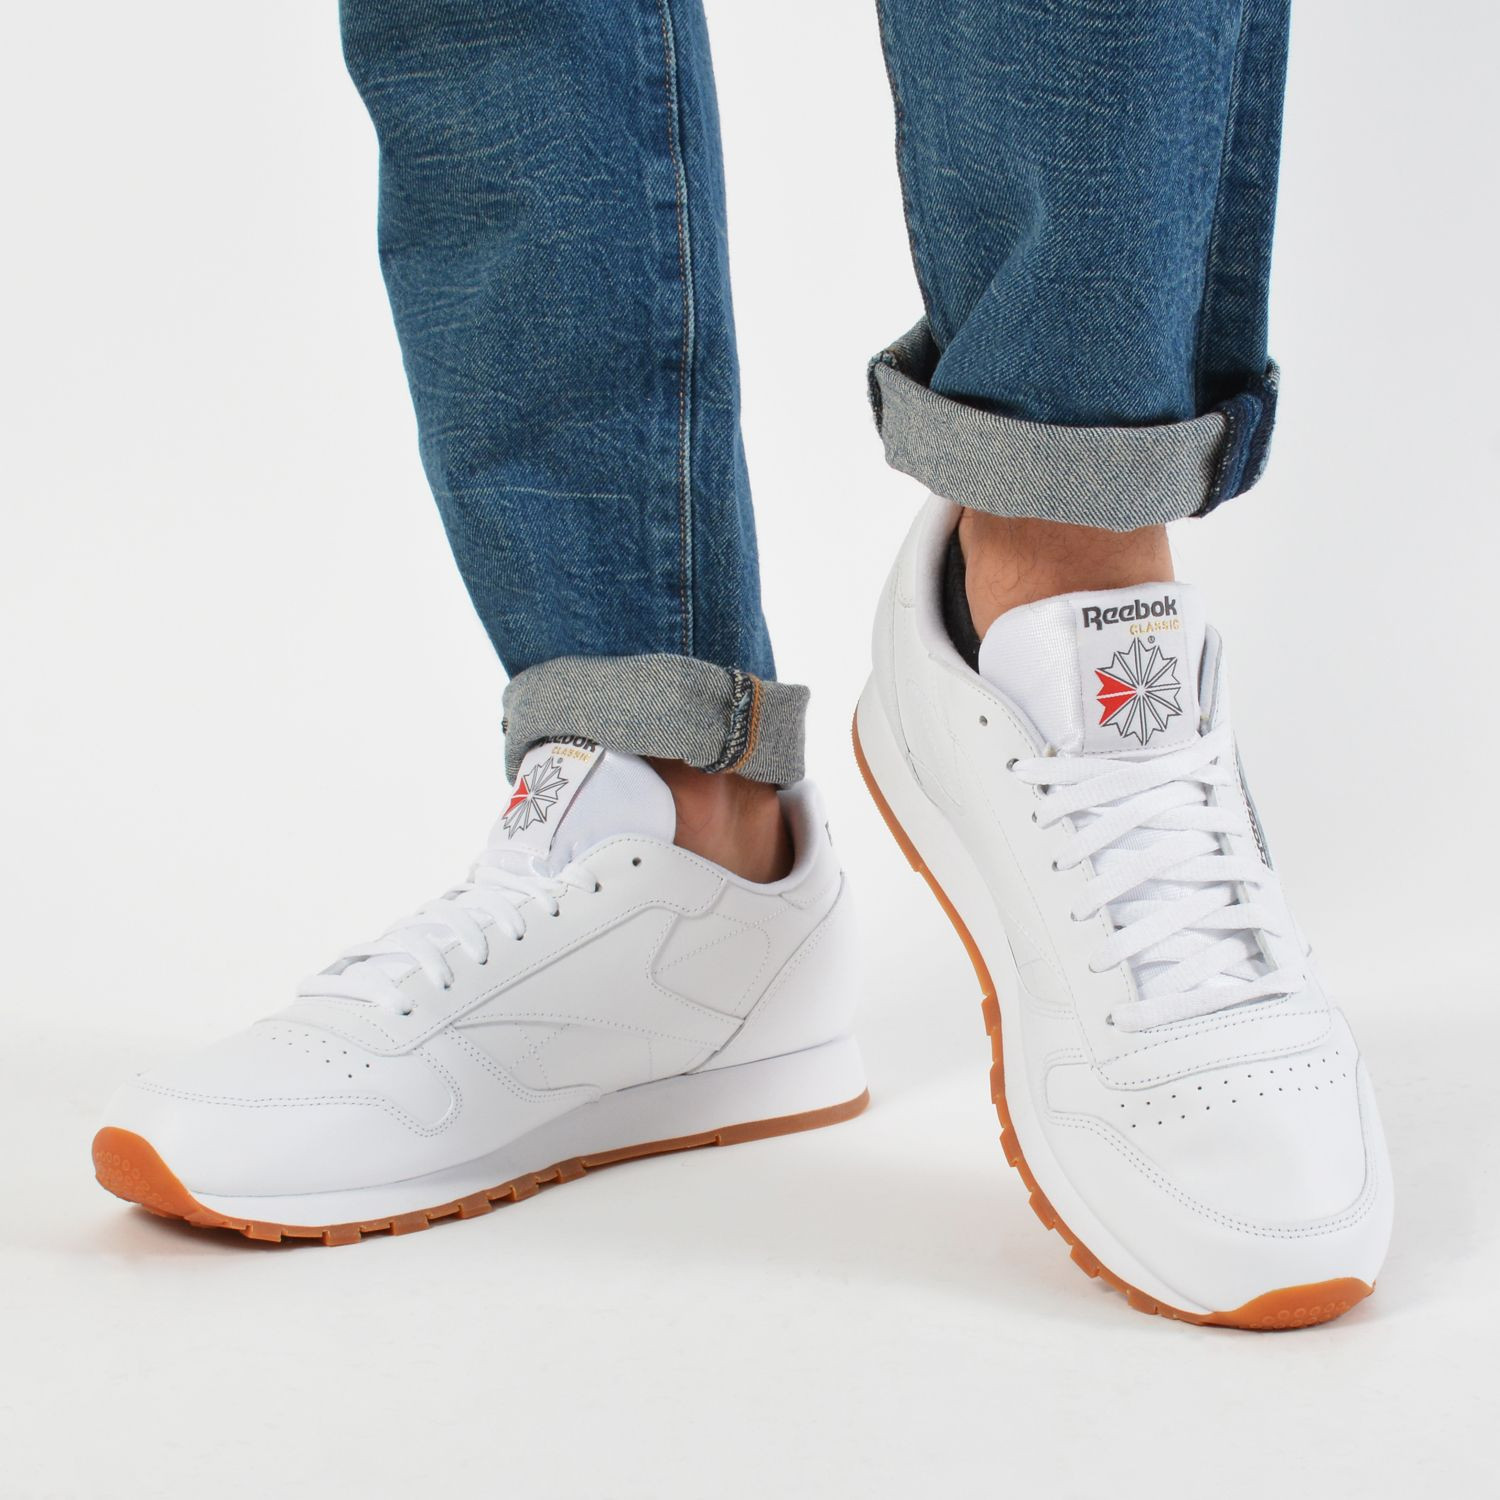 Reebok Classic Leather Unisex Παπούτσια (1080018245_18612)